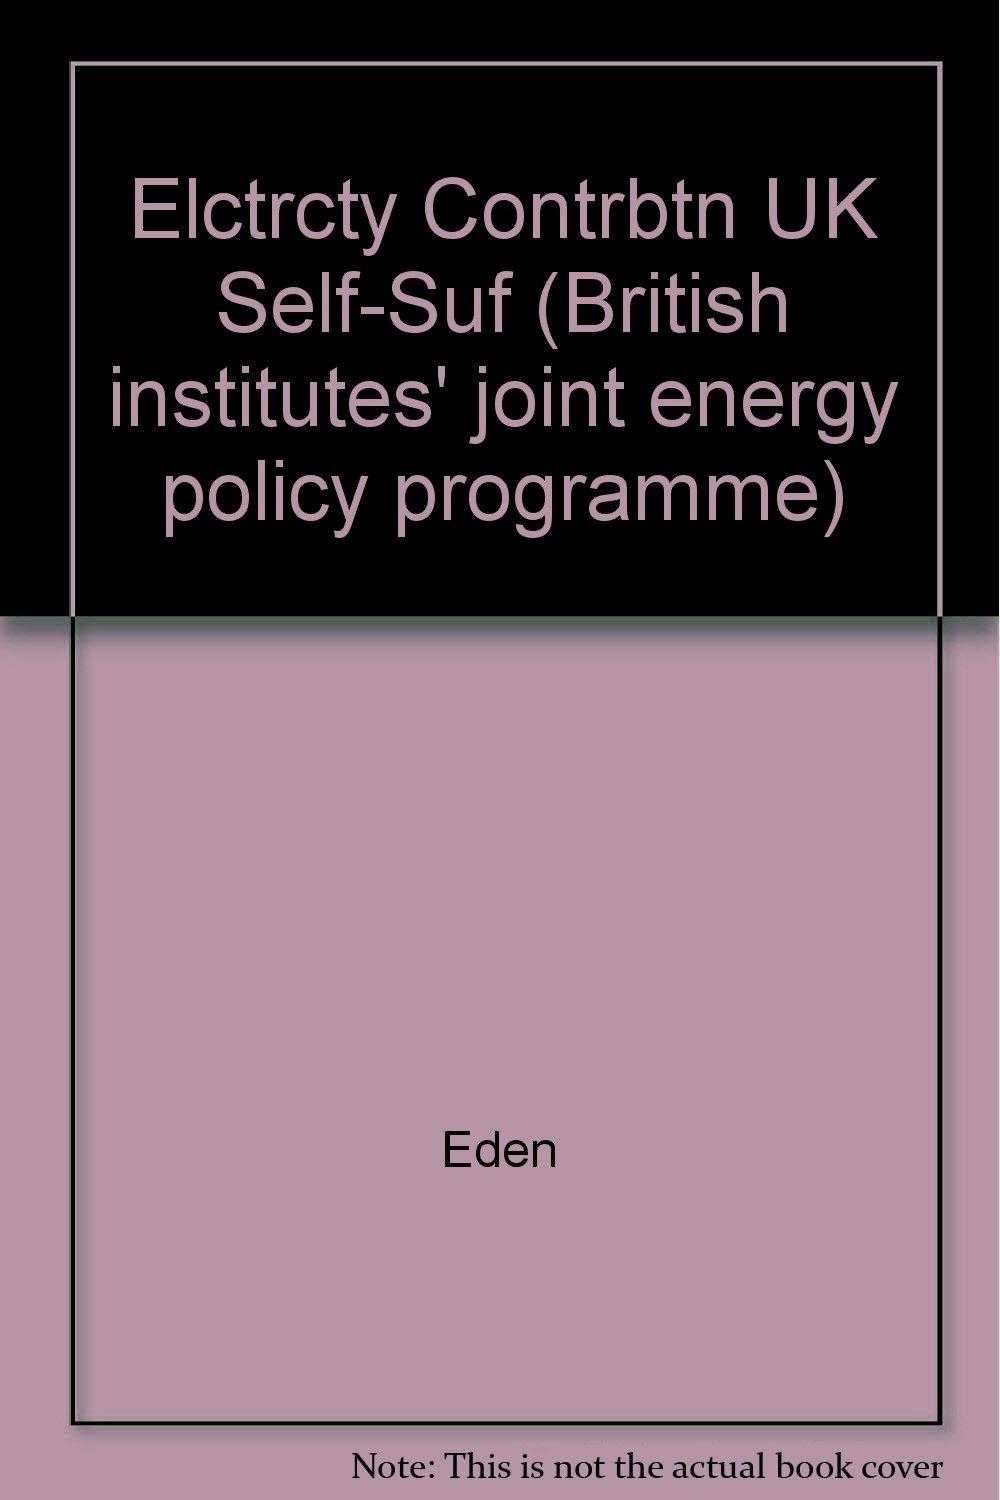 EDEN - Elctrcty Contrbtn UK Self-Suf (British institutes' joint energy policy progra.